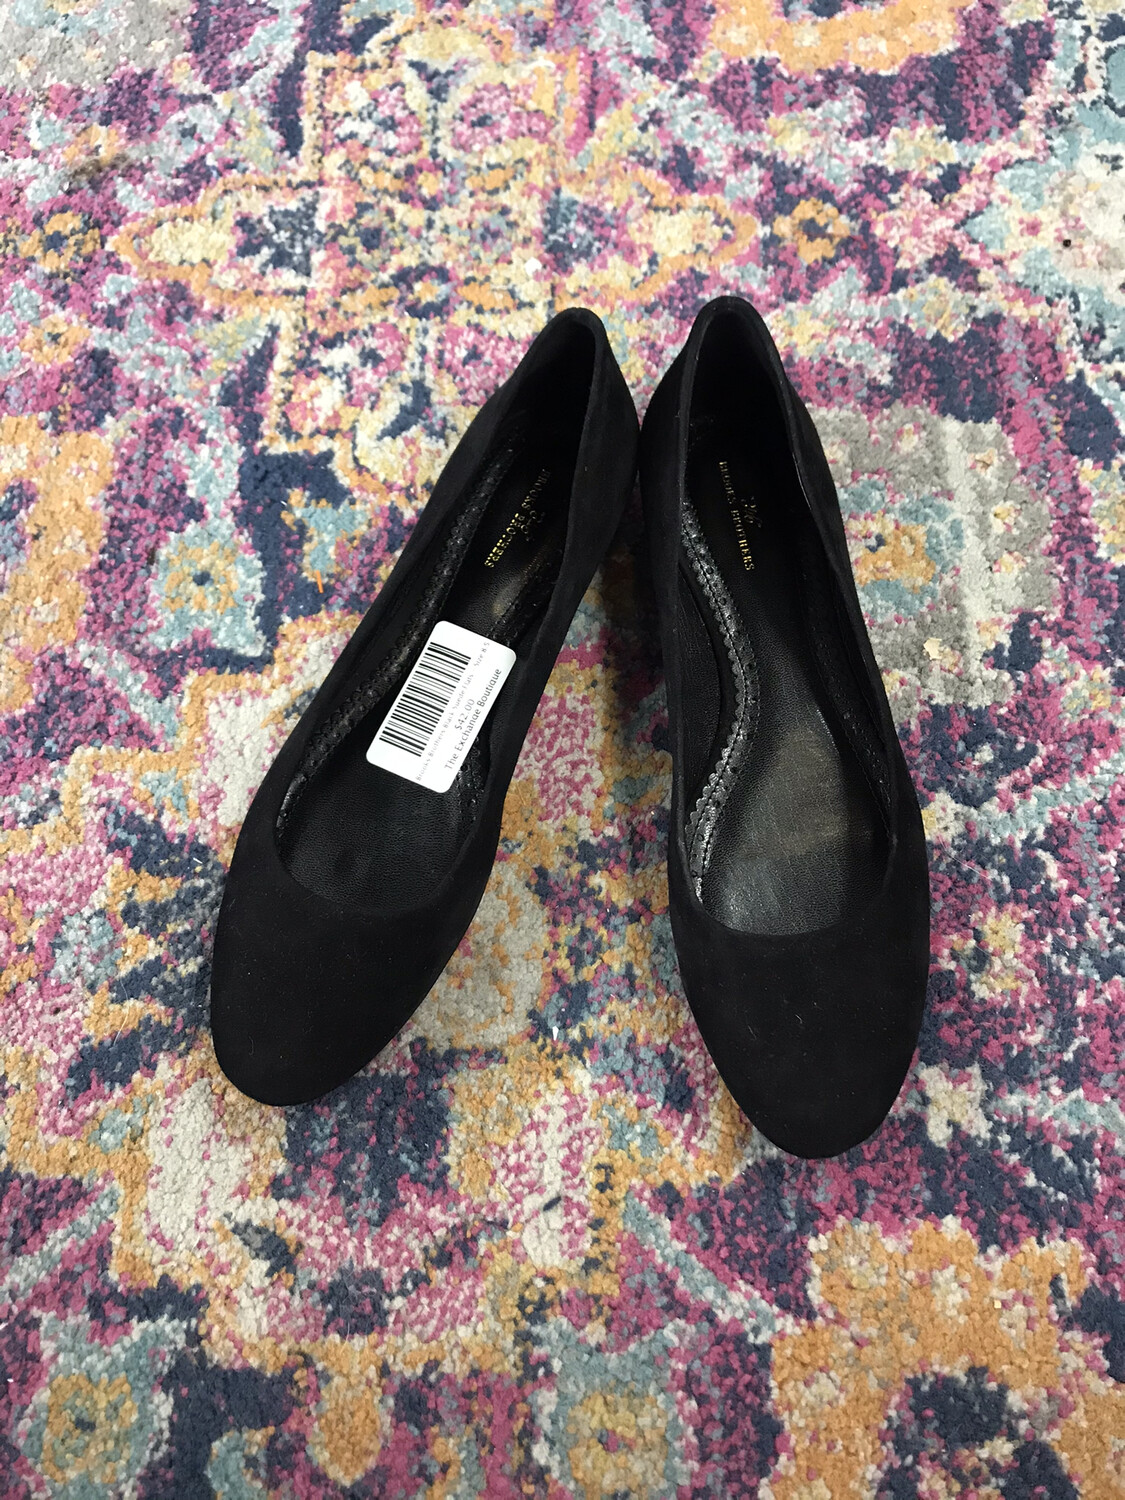 Brooks Brothers Black Suede Flats - Size 8.5